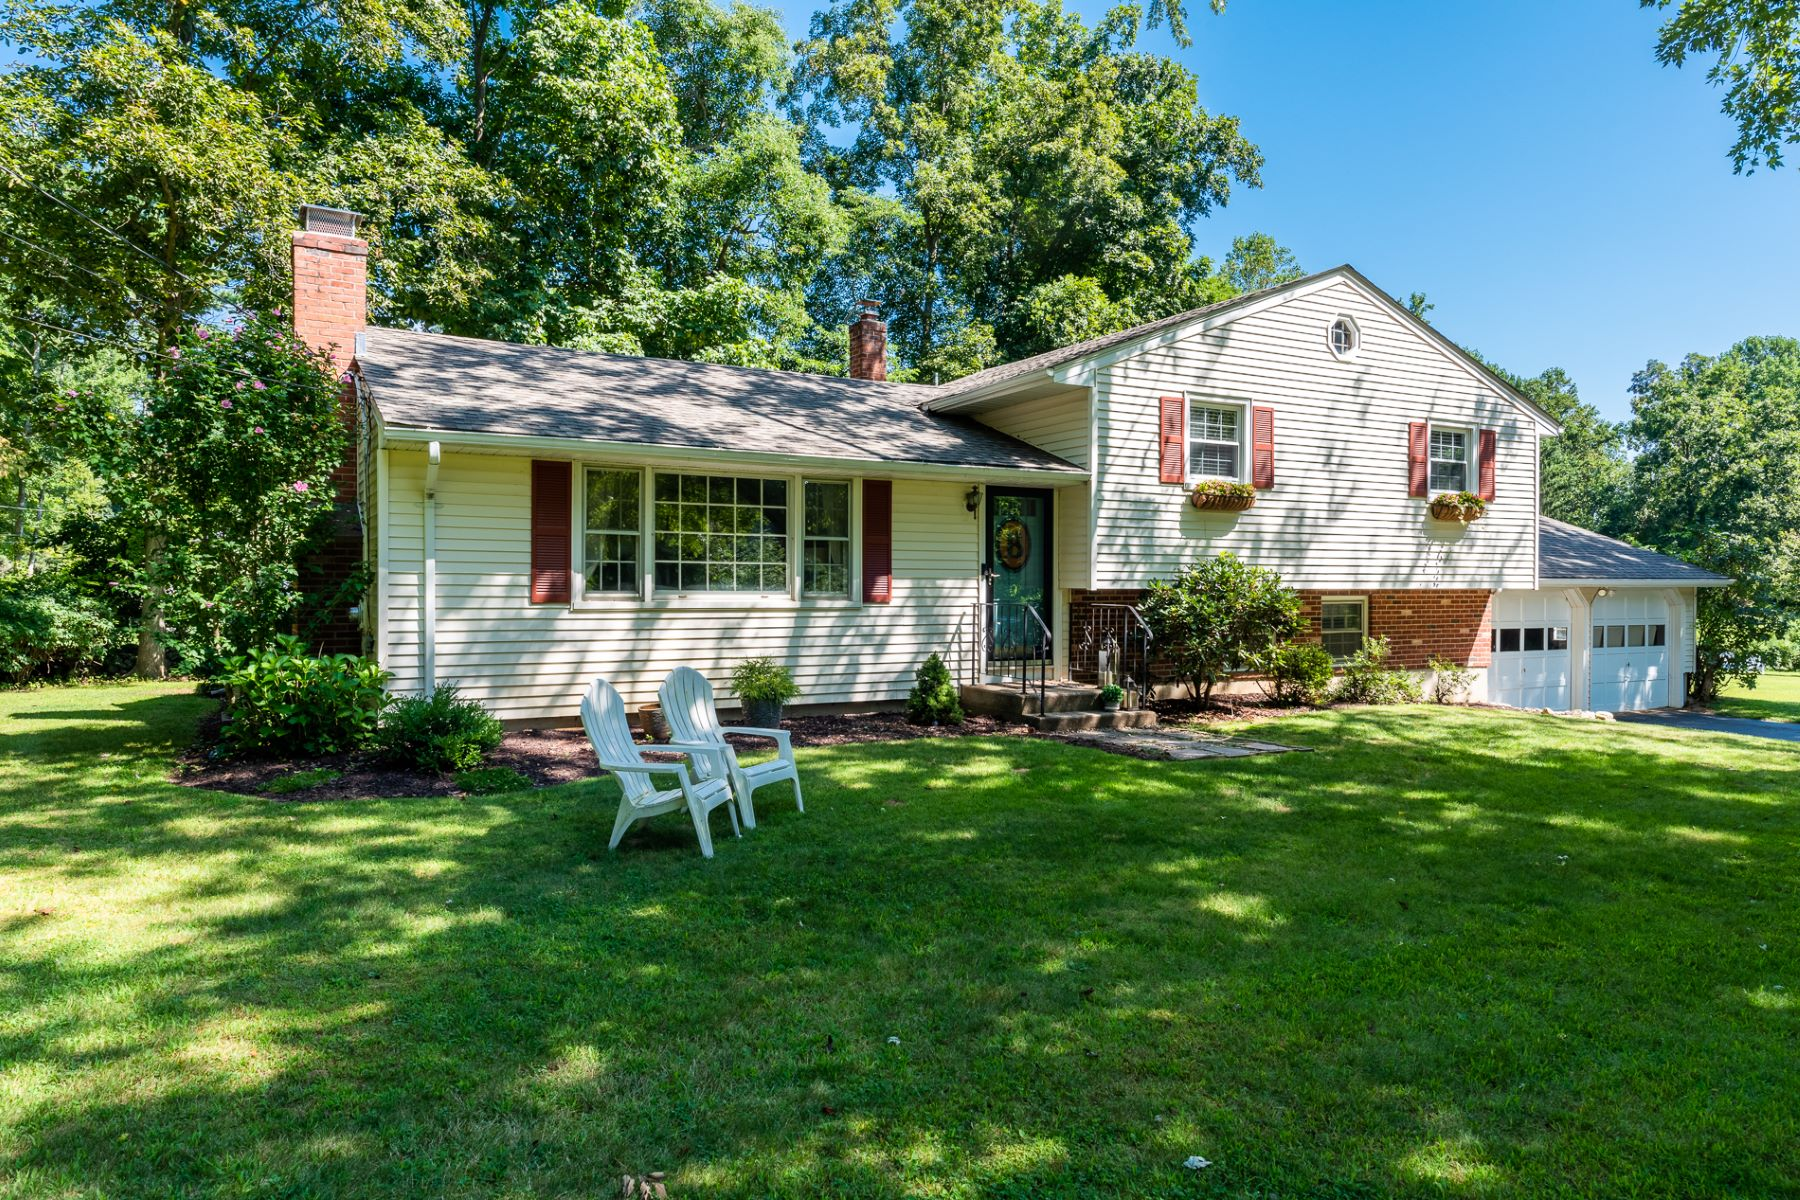 Single Family Homes for Sale at 3 Heritage Circle 3 Heritage Cir Clinton, Connecticut 06413 United States